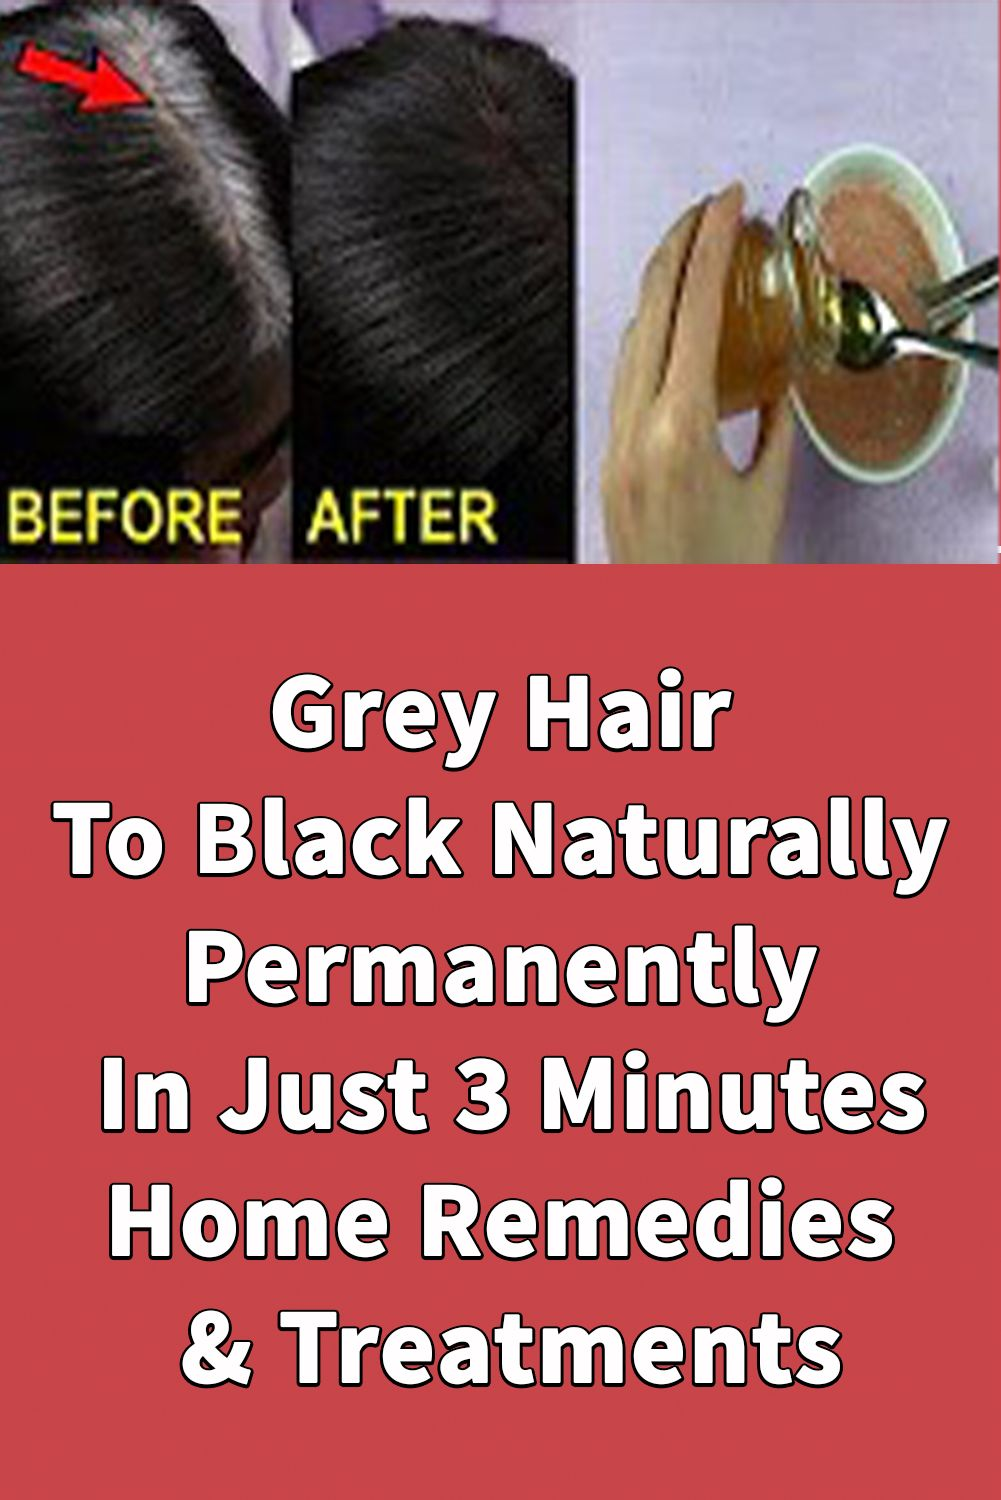 Grey Hair To Black Naturally Permanently In Just 3 Minutes Home Remedies Treatments In 2020 Black And Grey Hair Hair Dye Removal Grey Hair